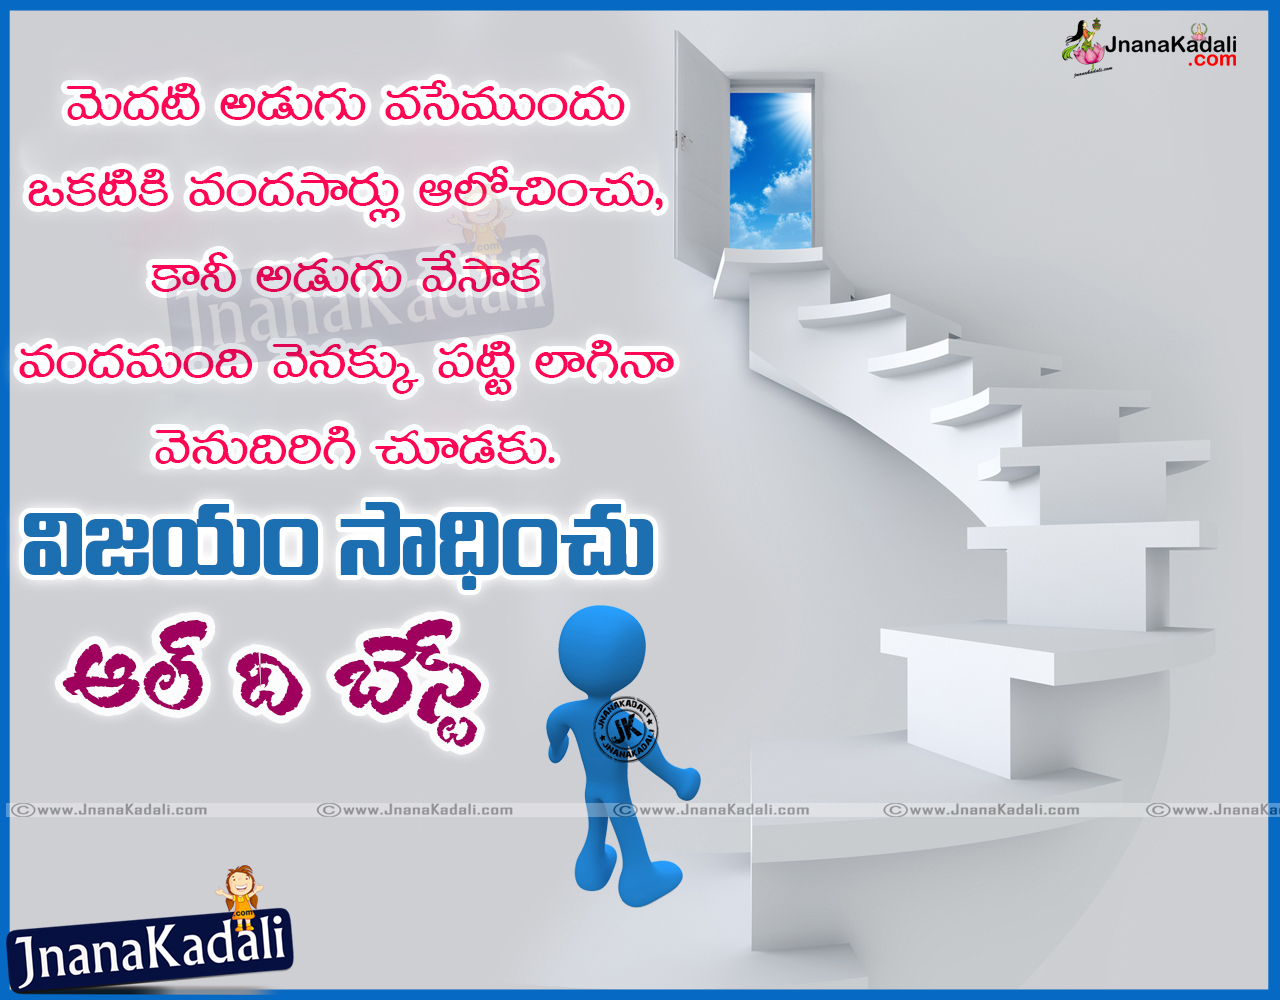 Wish you all the best quotes in telugu for lifeexamcareerfriend telugu all the best messages for boss telugu wishing all the best messages telugu m4hsunfo